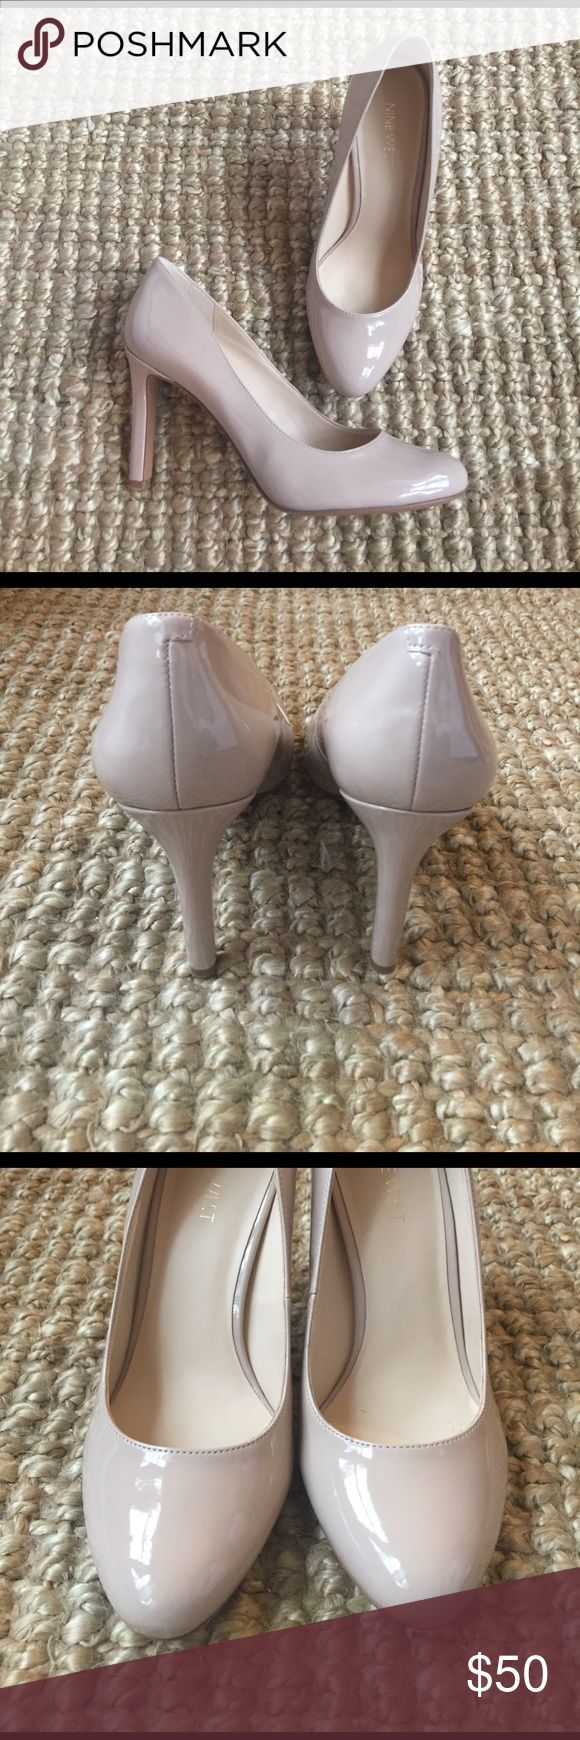 NWT Nine West Heel Awesome shoe! Not too tall, flattering toe shape and perfect nude color. Nine West Shoes Heels